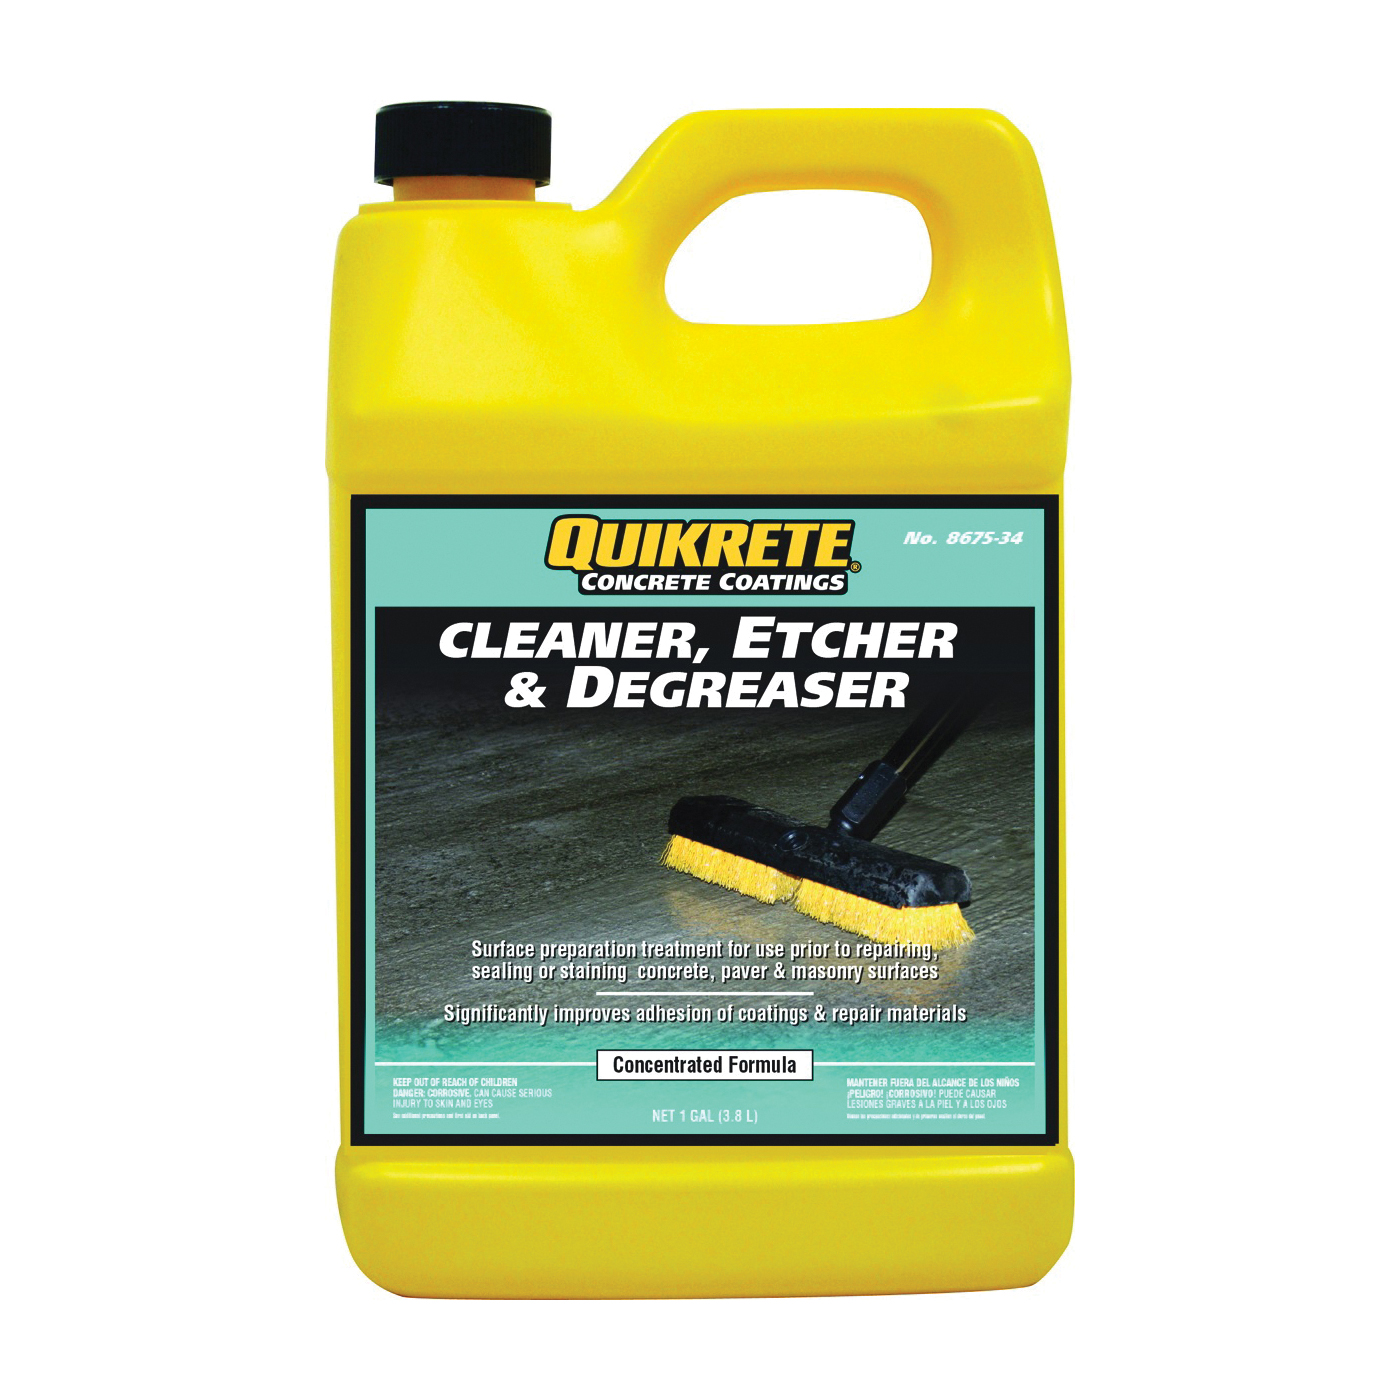 Picture of Quikrete 8675-34 Cleaner, Liquid, Mild, Pale Yellow, 1 gal, Bottle